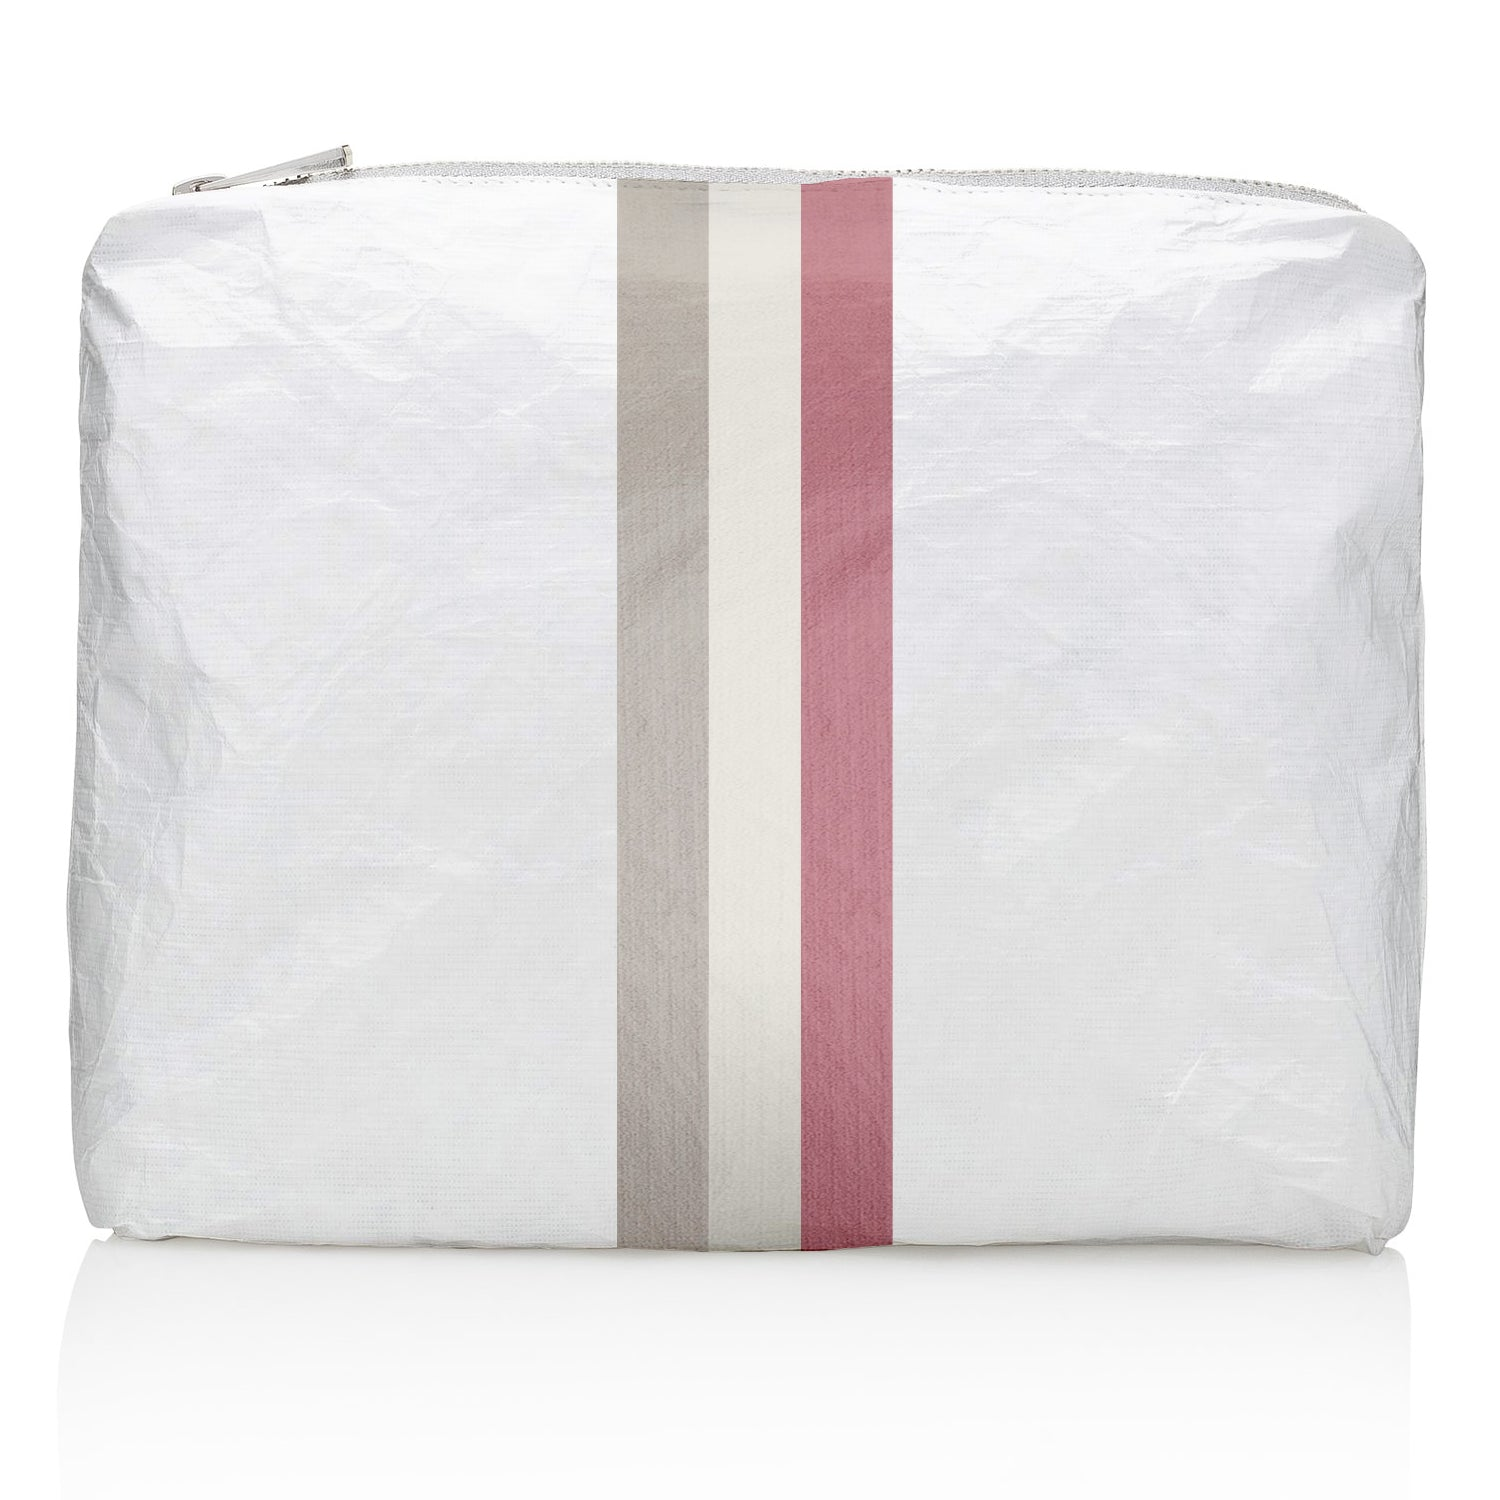 Medium Pack - Shimmer White with Fairy Pink Stripes